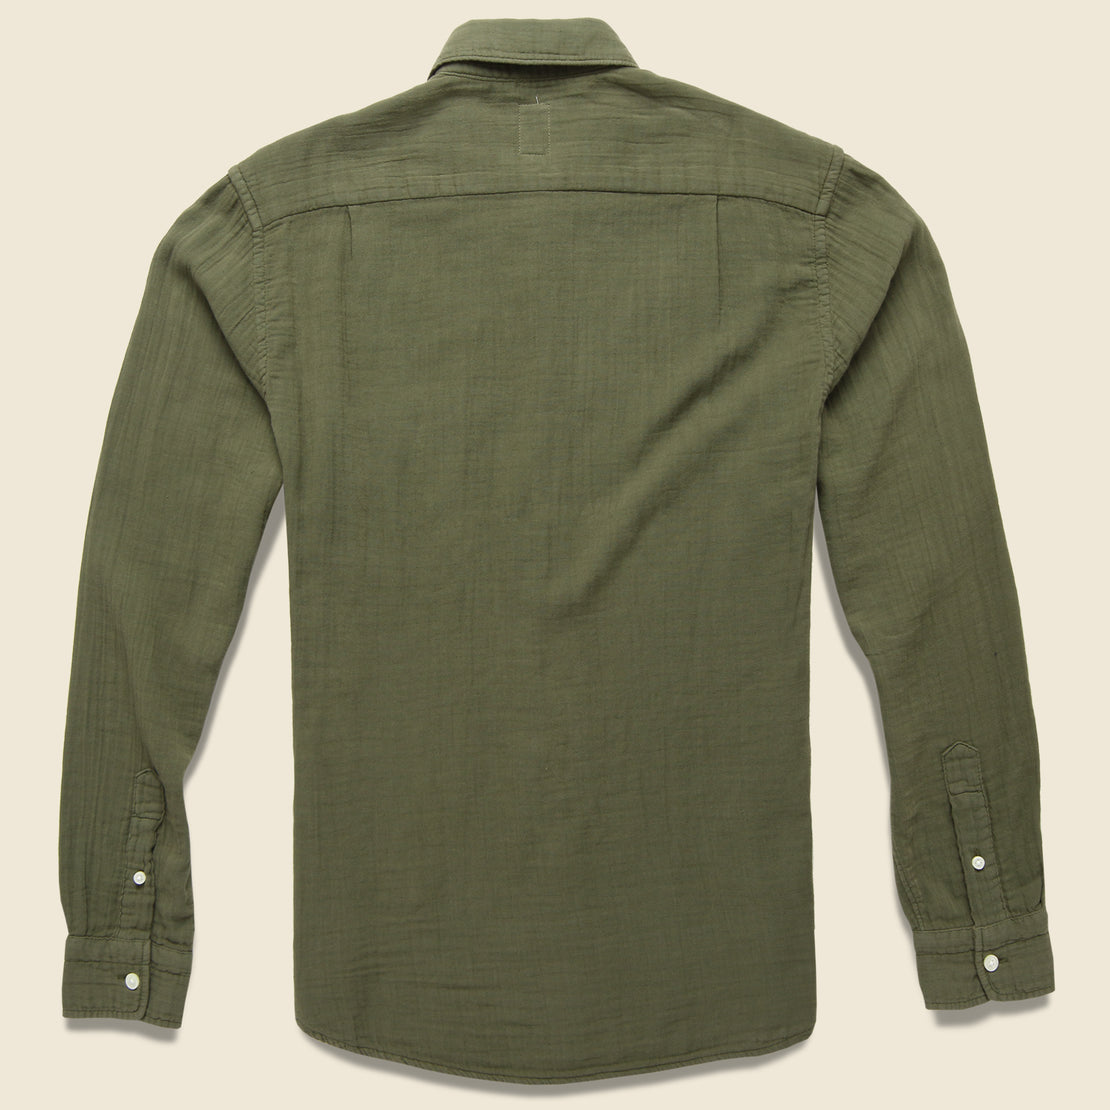 Vintage Double Gauze Shirt - Military Green